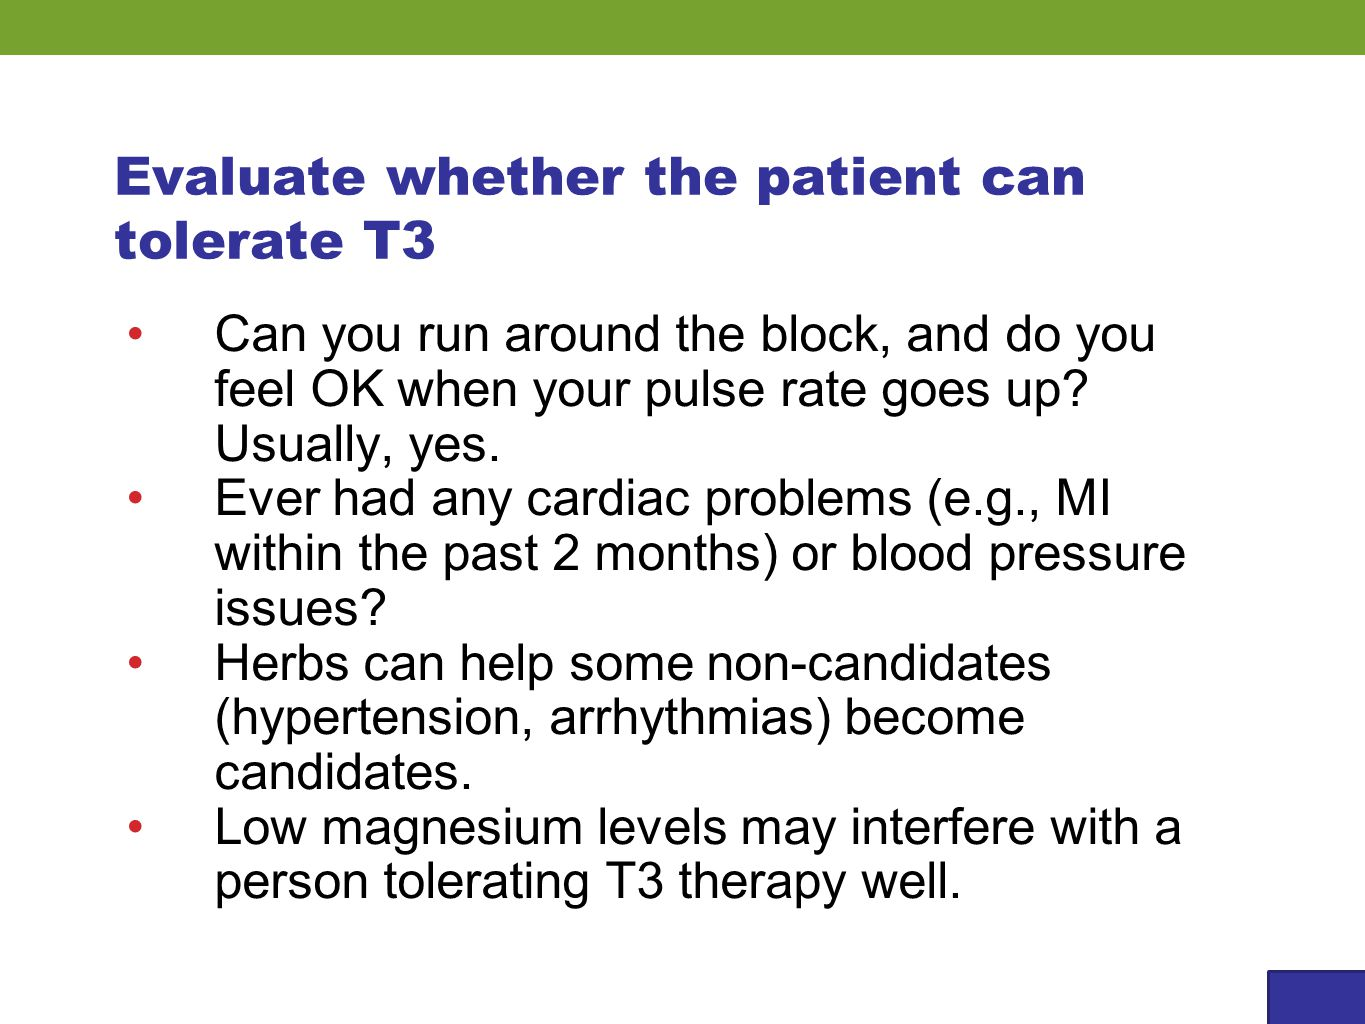 Evaluate whether the patient can tolerate T3 Can you run around the block, and do you feel OK when your pulse rate goes up? Usually, yes. Ever had any